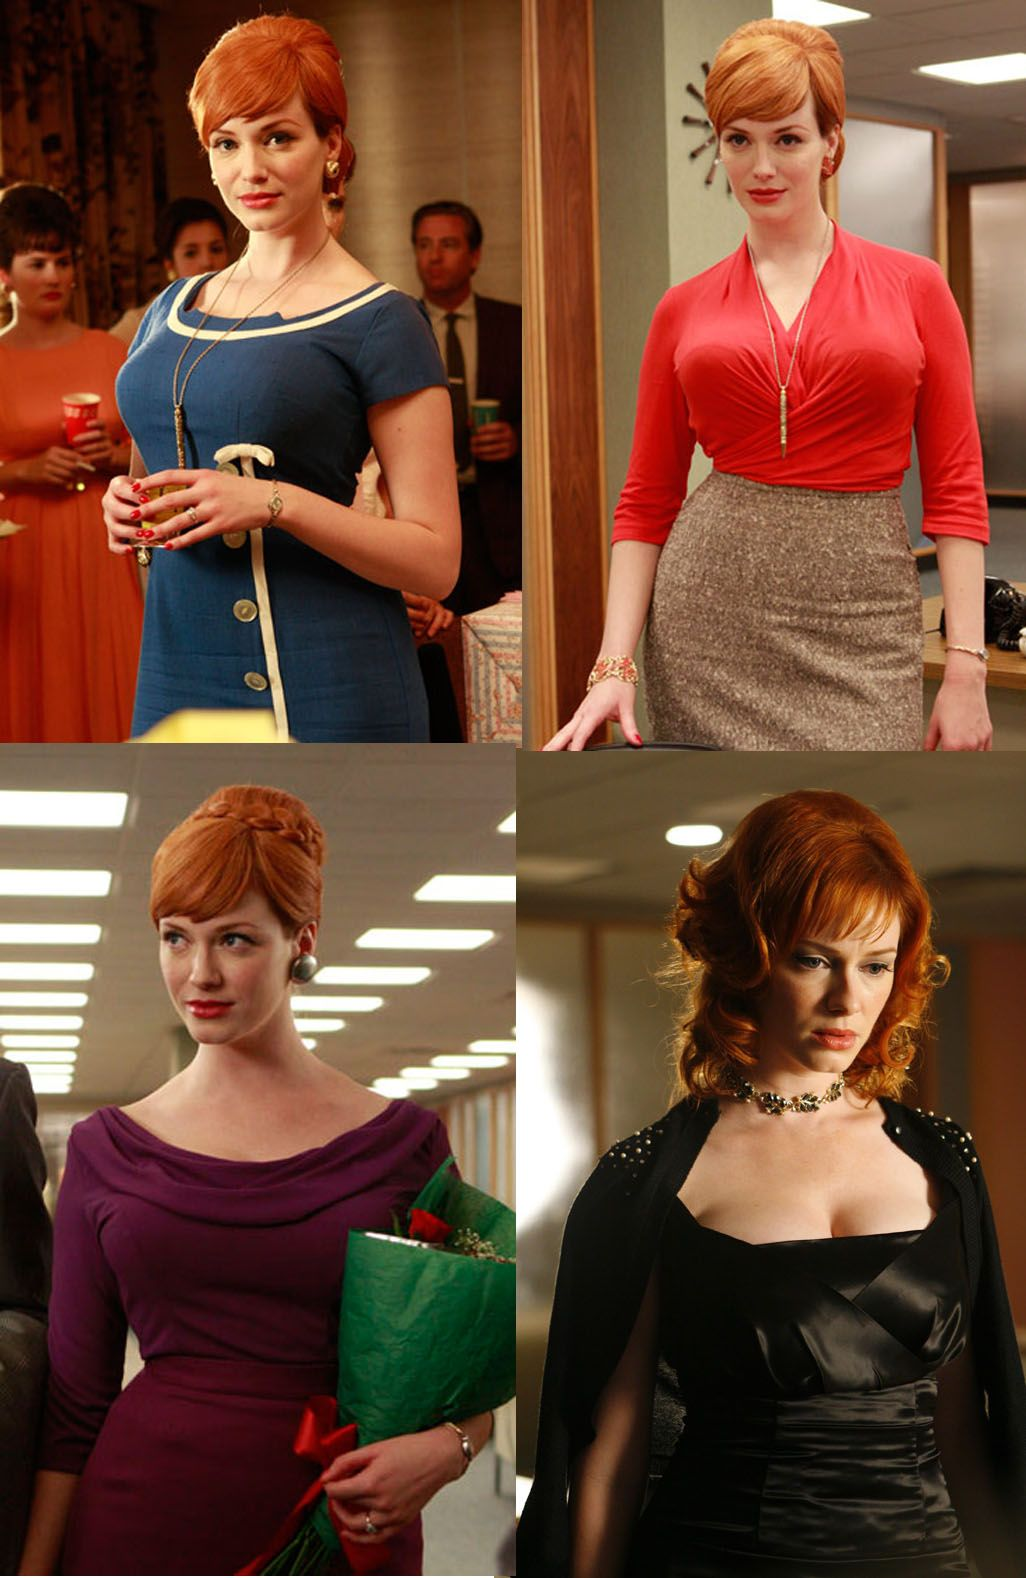 Christina Hendricks - Bra Size Controversy =, Written by Sophia Jenner, Lingerie Enthusiast